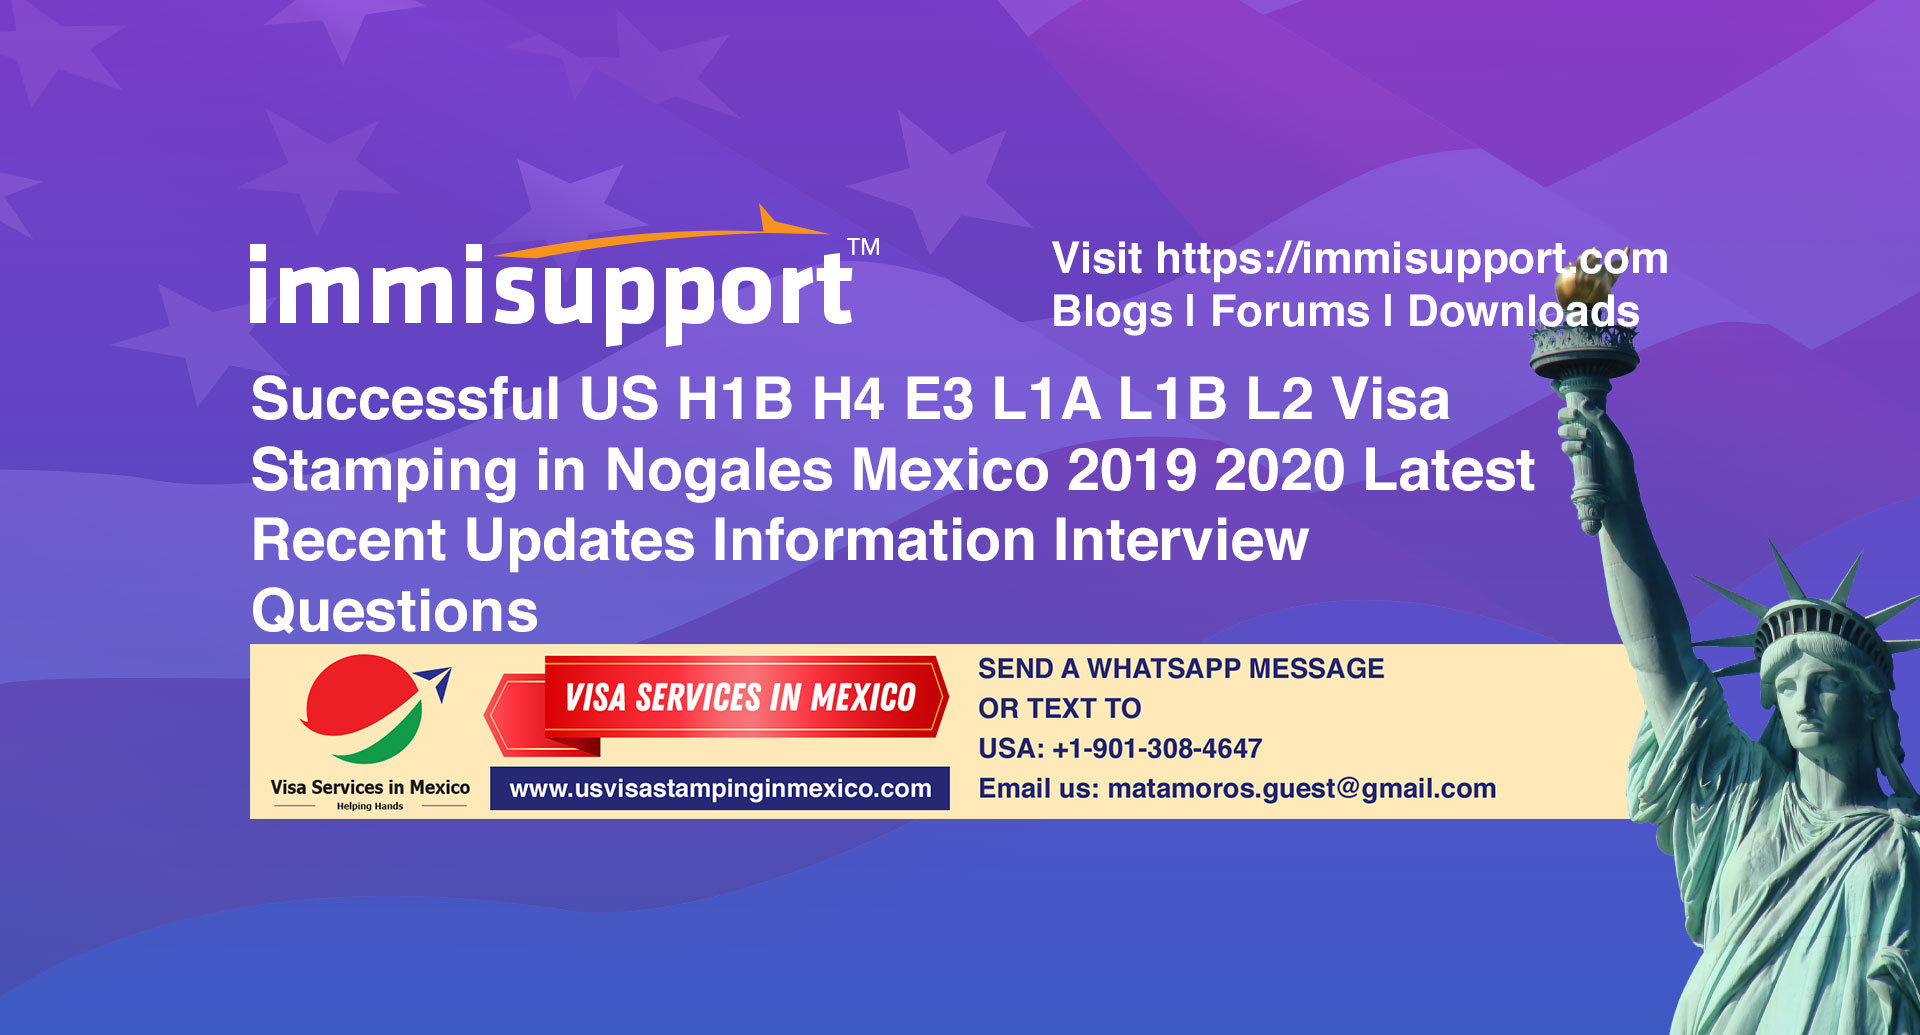 Successful US H1B H4 E3 L1A L1B L2 Visa Stamping in Nogales Mexico 2019 2020 Latest Recent Updates Information Interview Questions